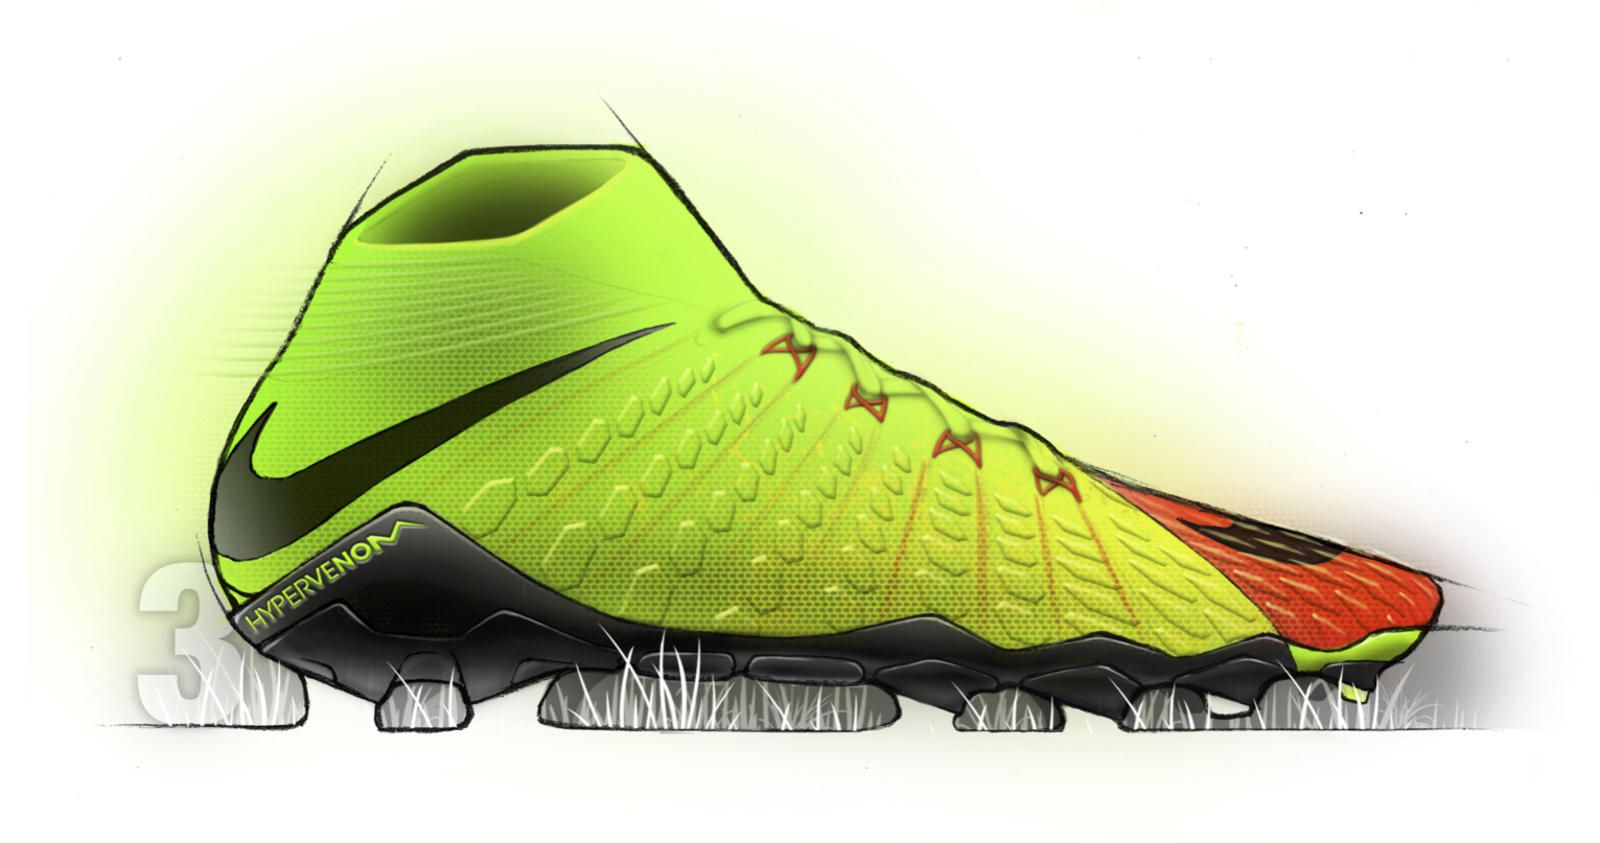 Nike Hypervenom 3 Shoe Design Sketches Shoe Sketches Designs To Draw